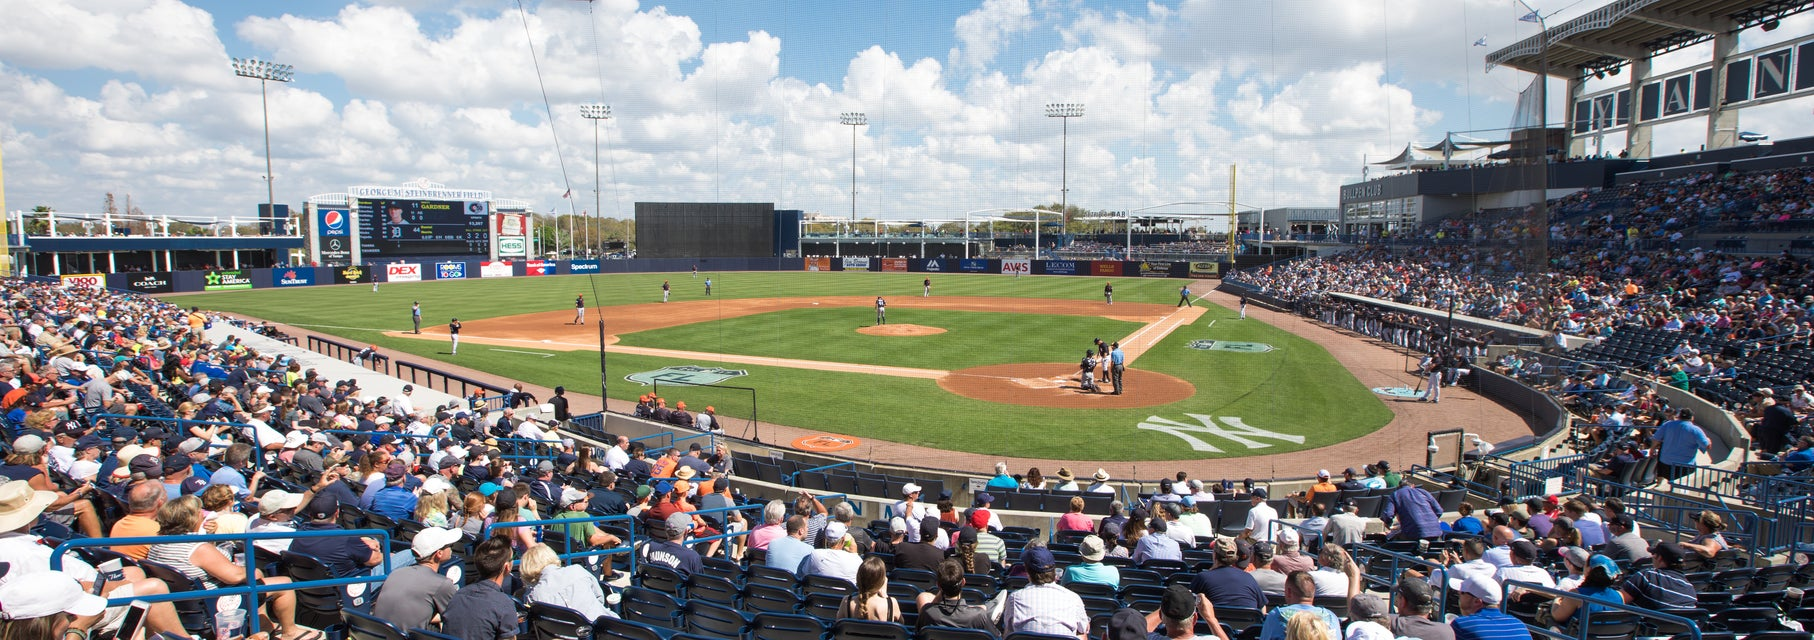 Yankees - Spring Training Tickets